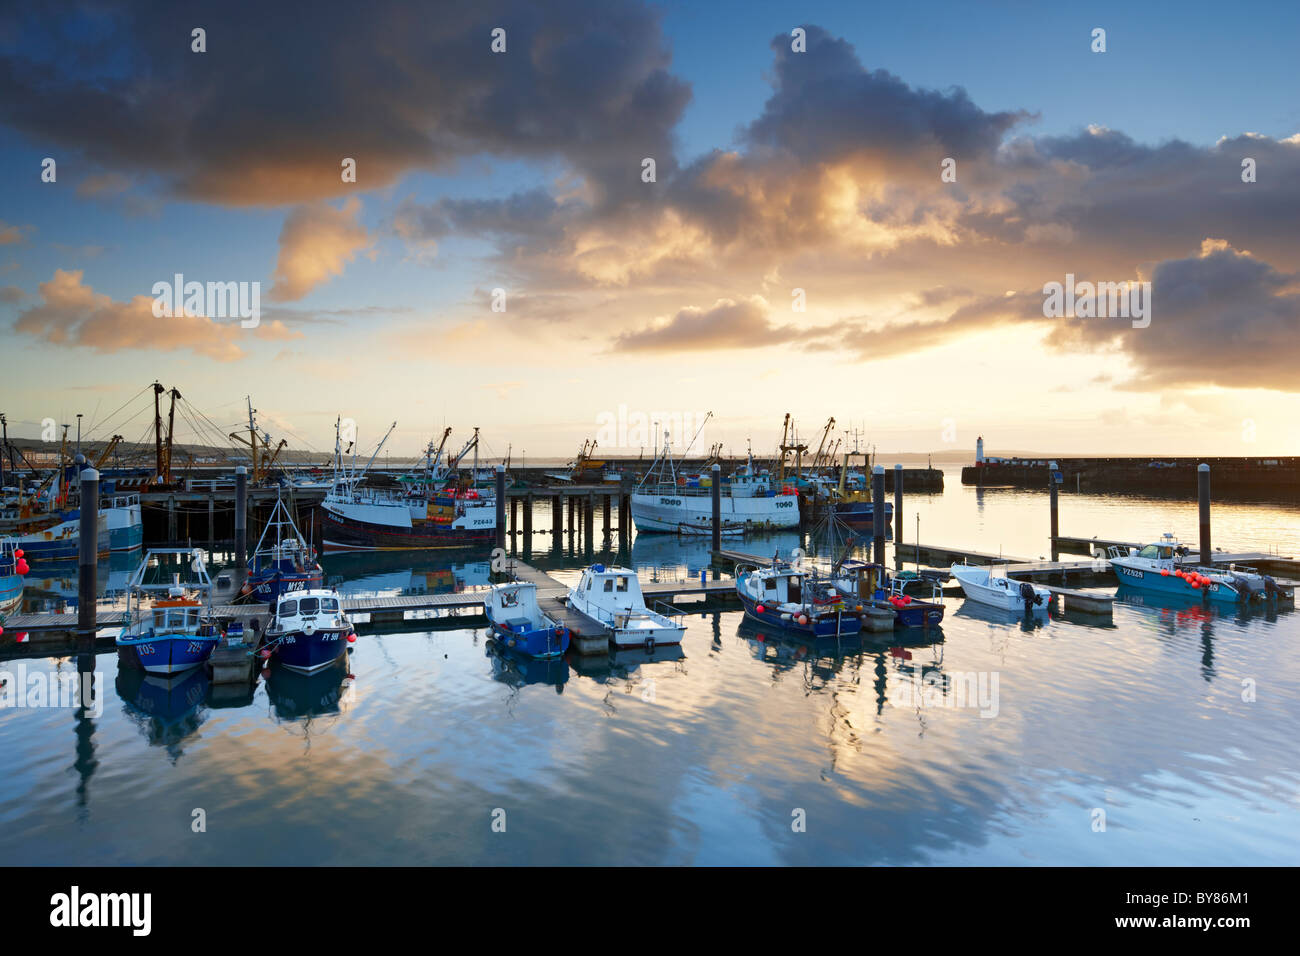 Dramatic rain clouds catching the light of dawn pass over and reflect in the calm waters of Newlyn Harbour - Stock Image